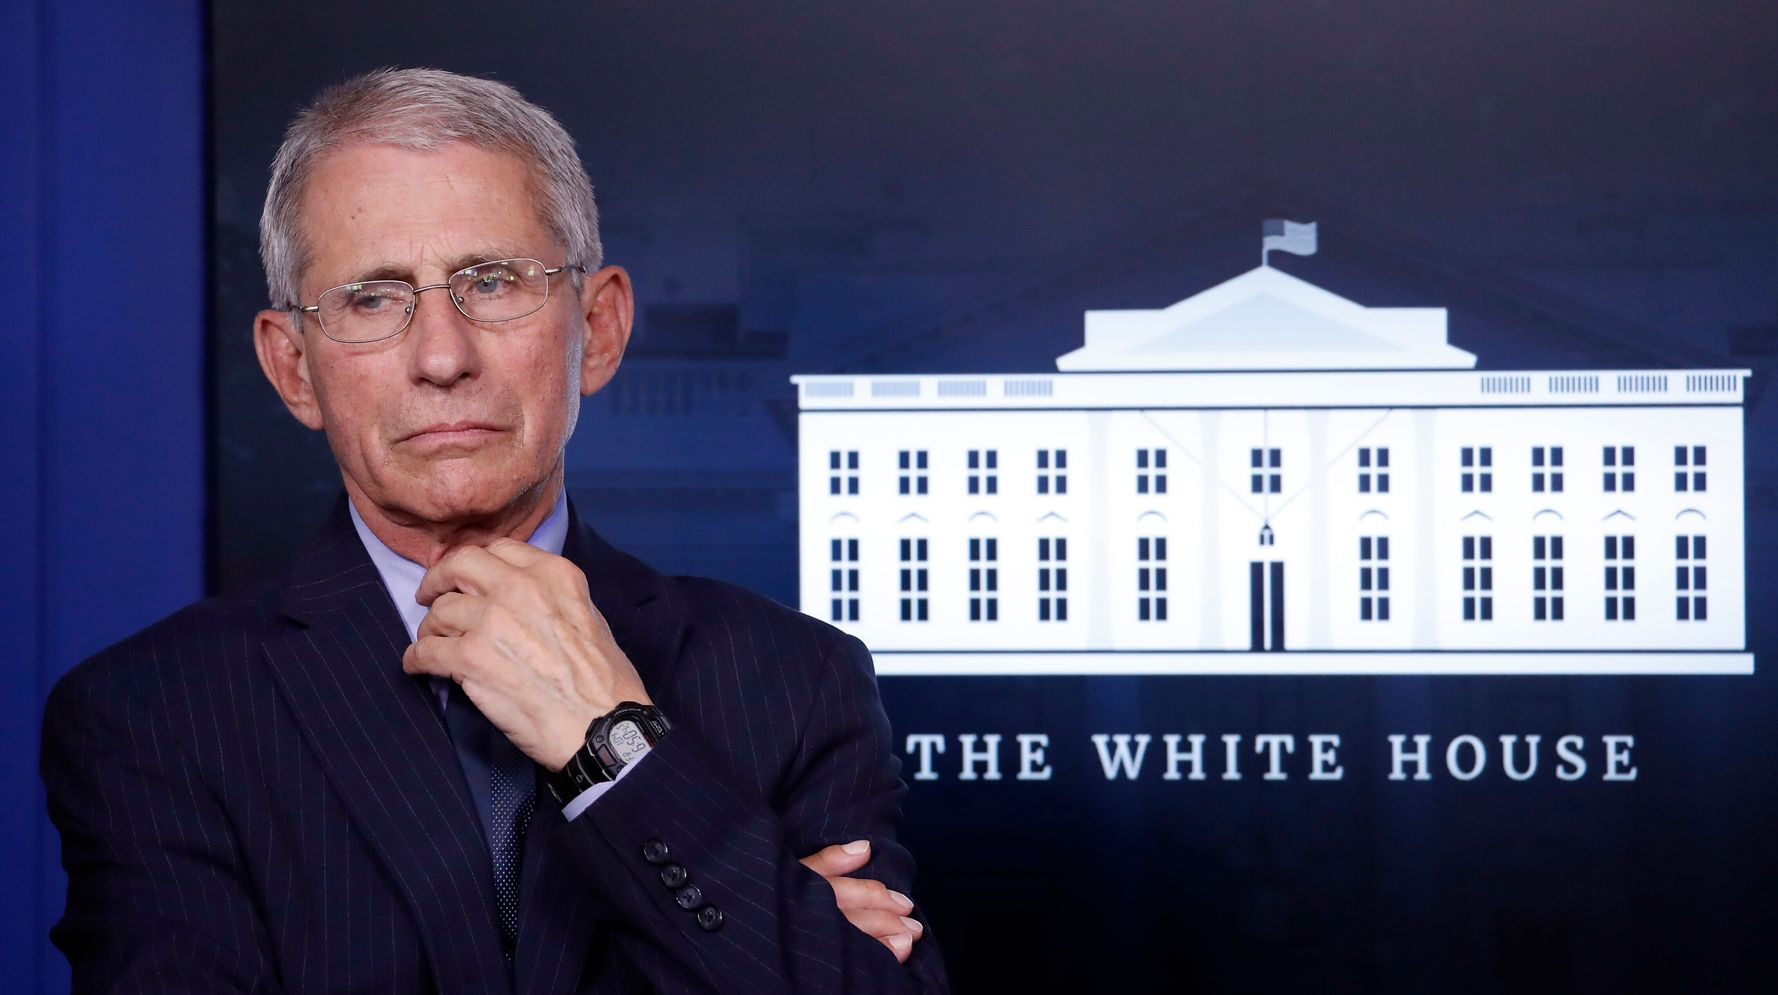 Fauci To Receive More Personal Security After Threats: Reports